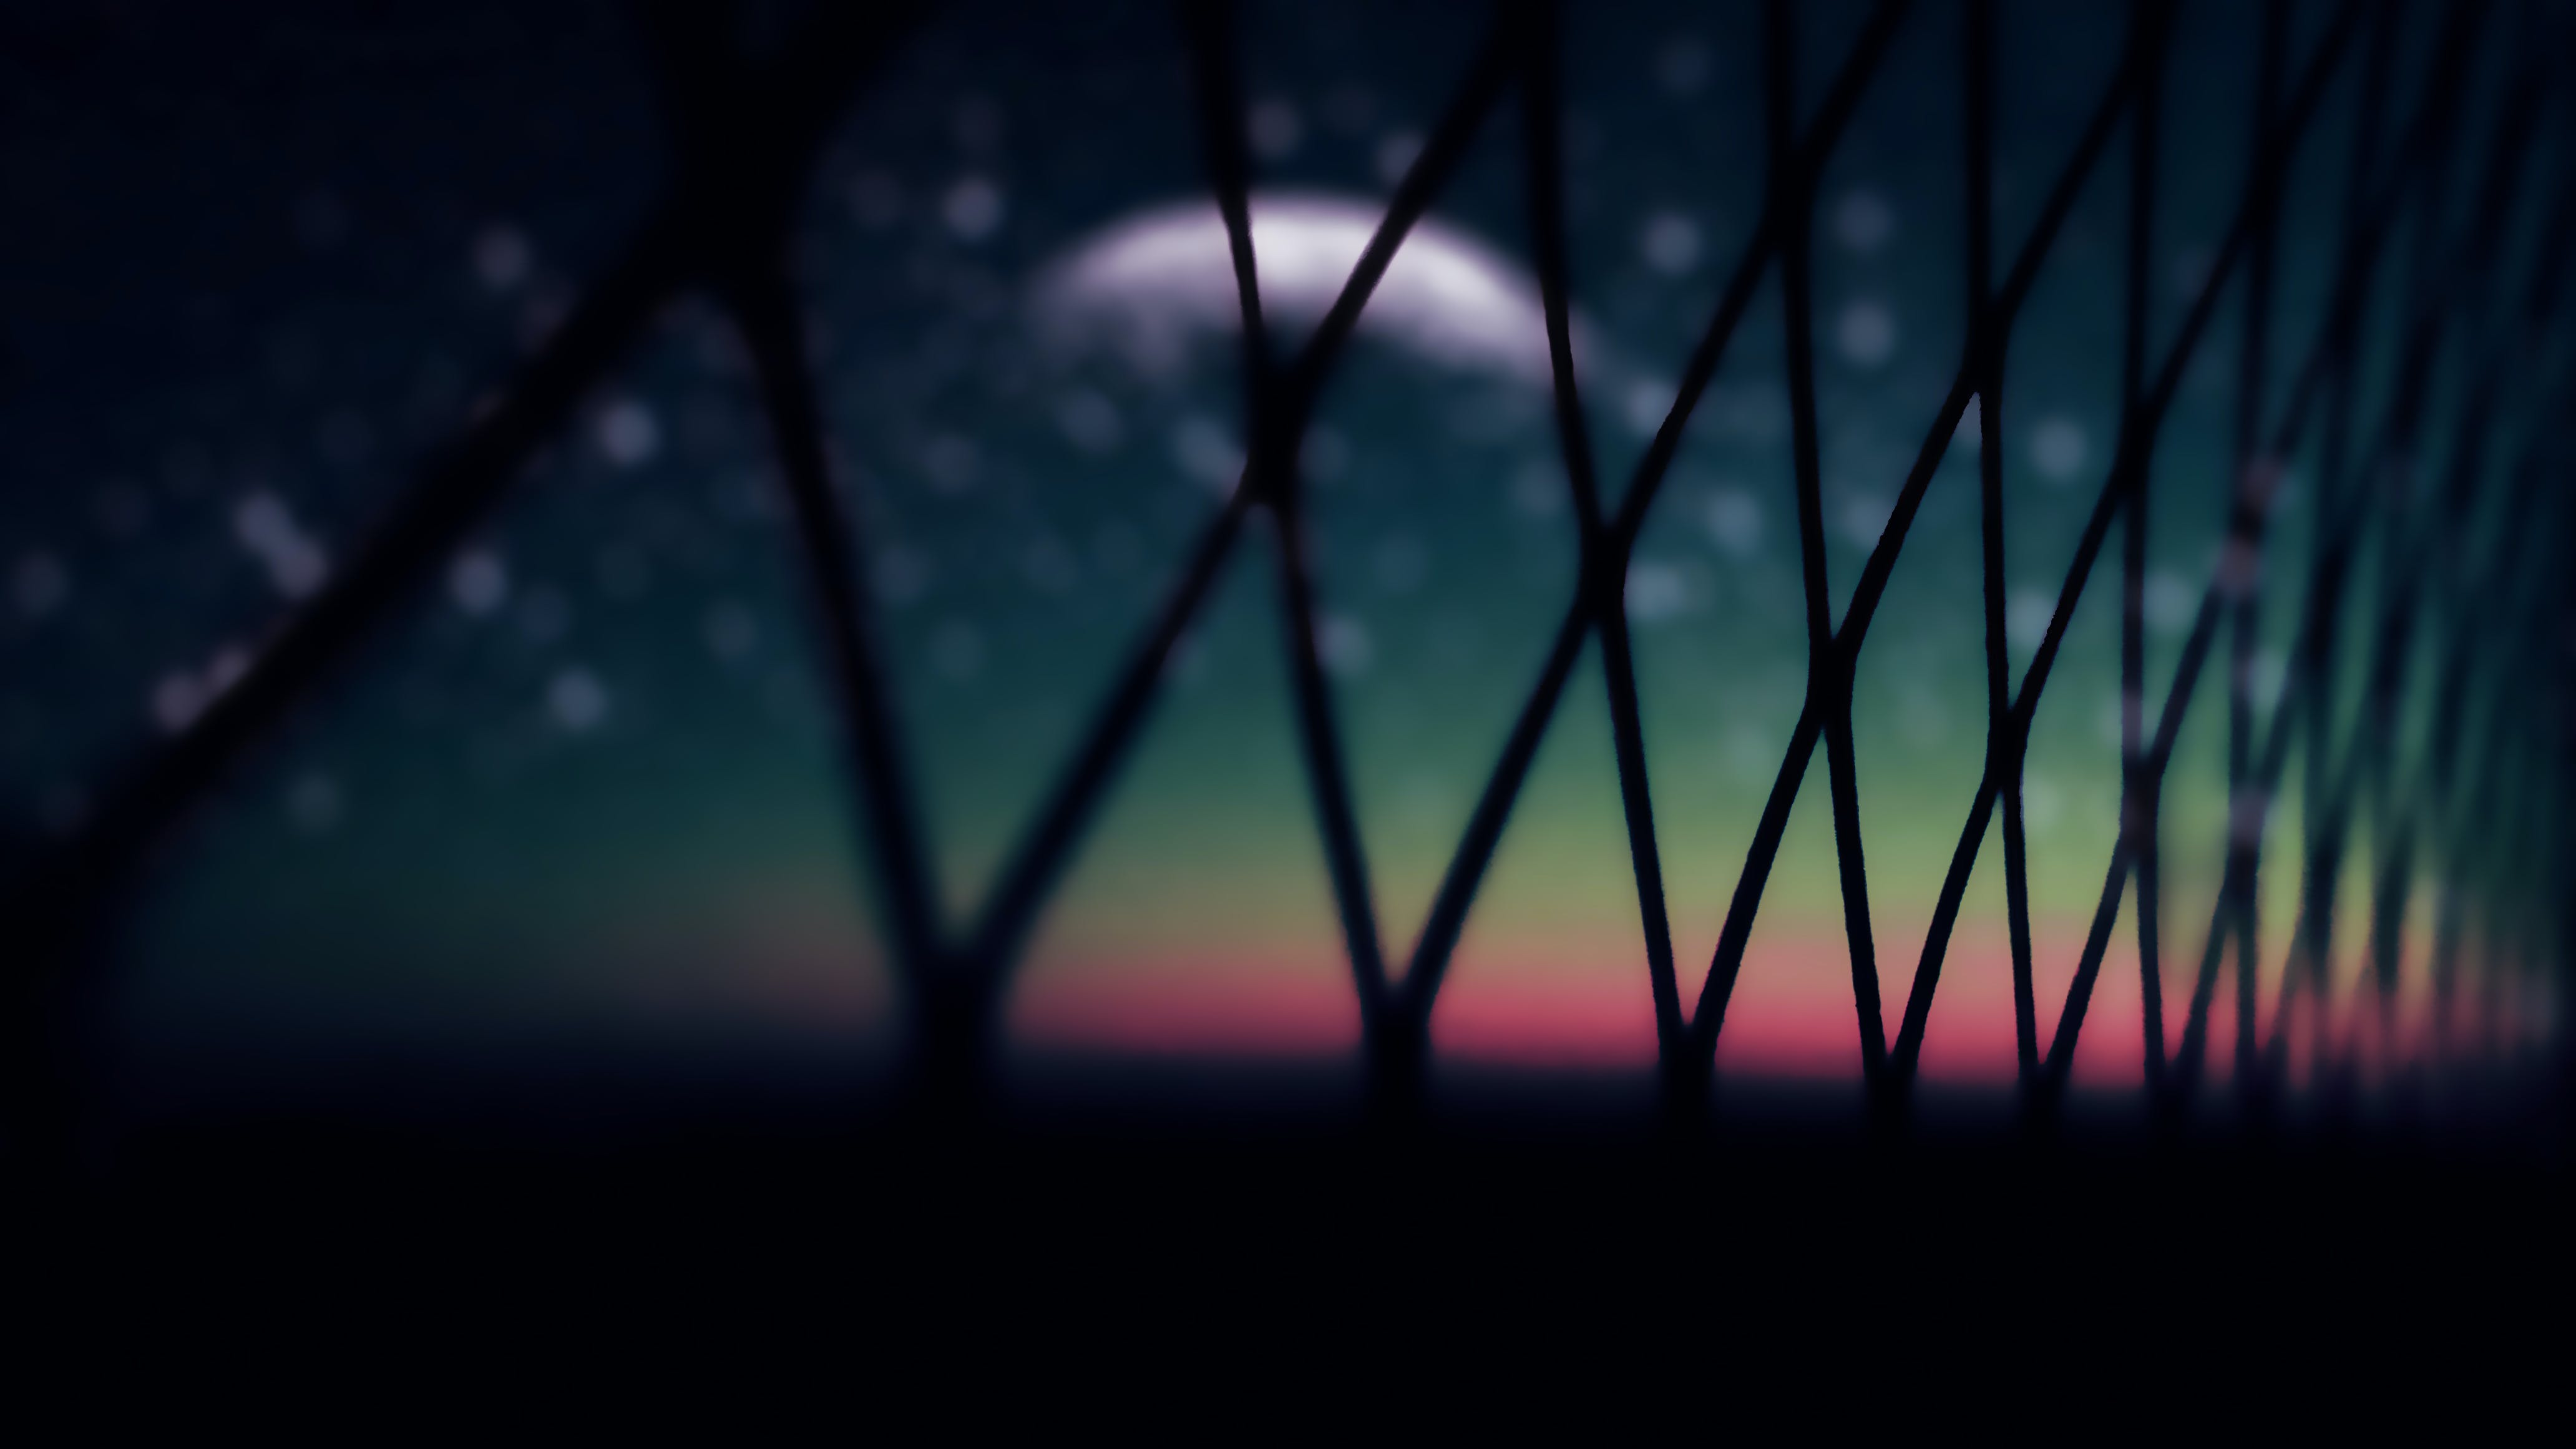 Black Link Wire Fence at Night